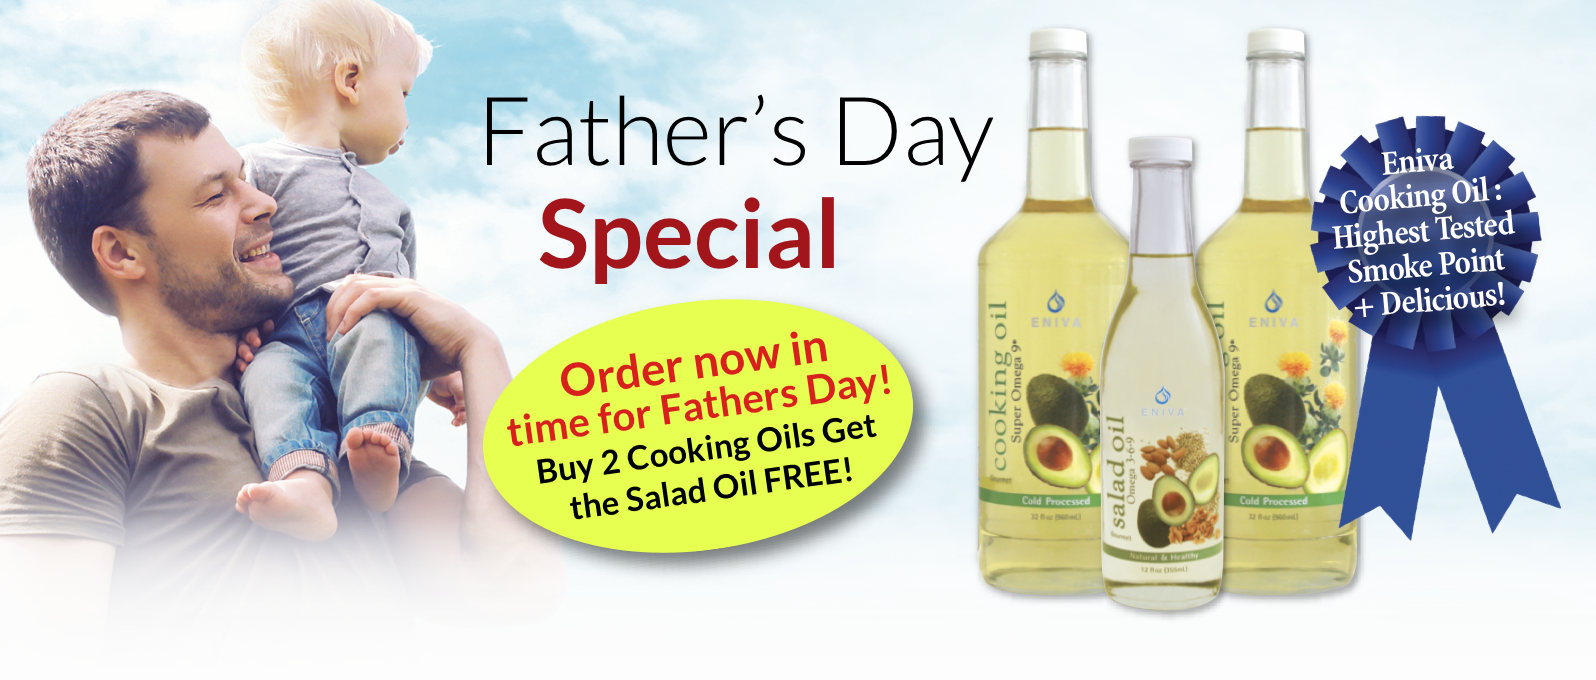 father's day Cooking oil omega 9 buy 2 get 1